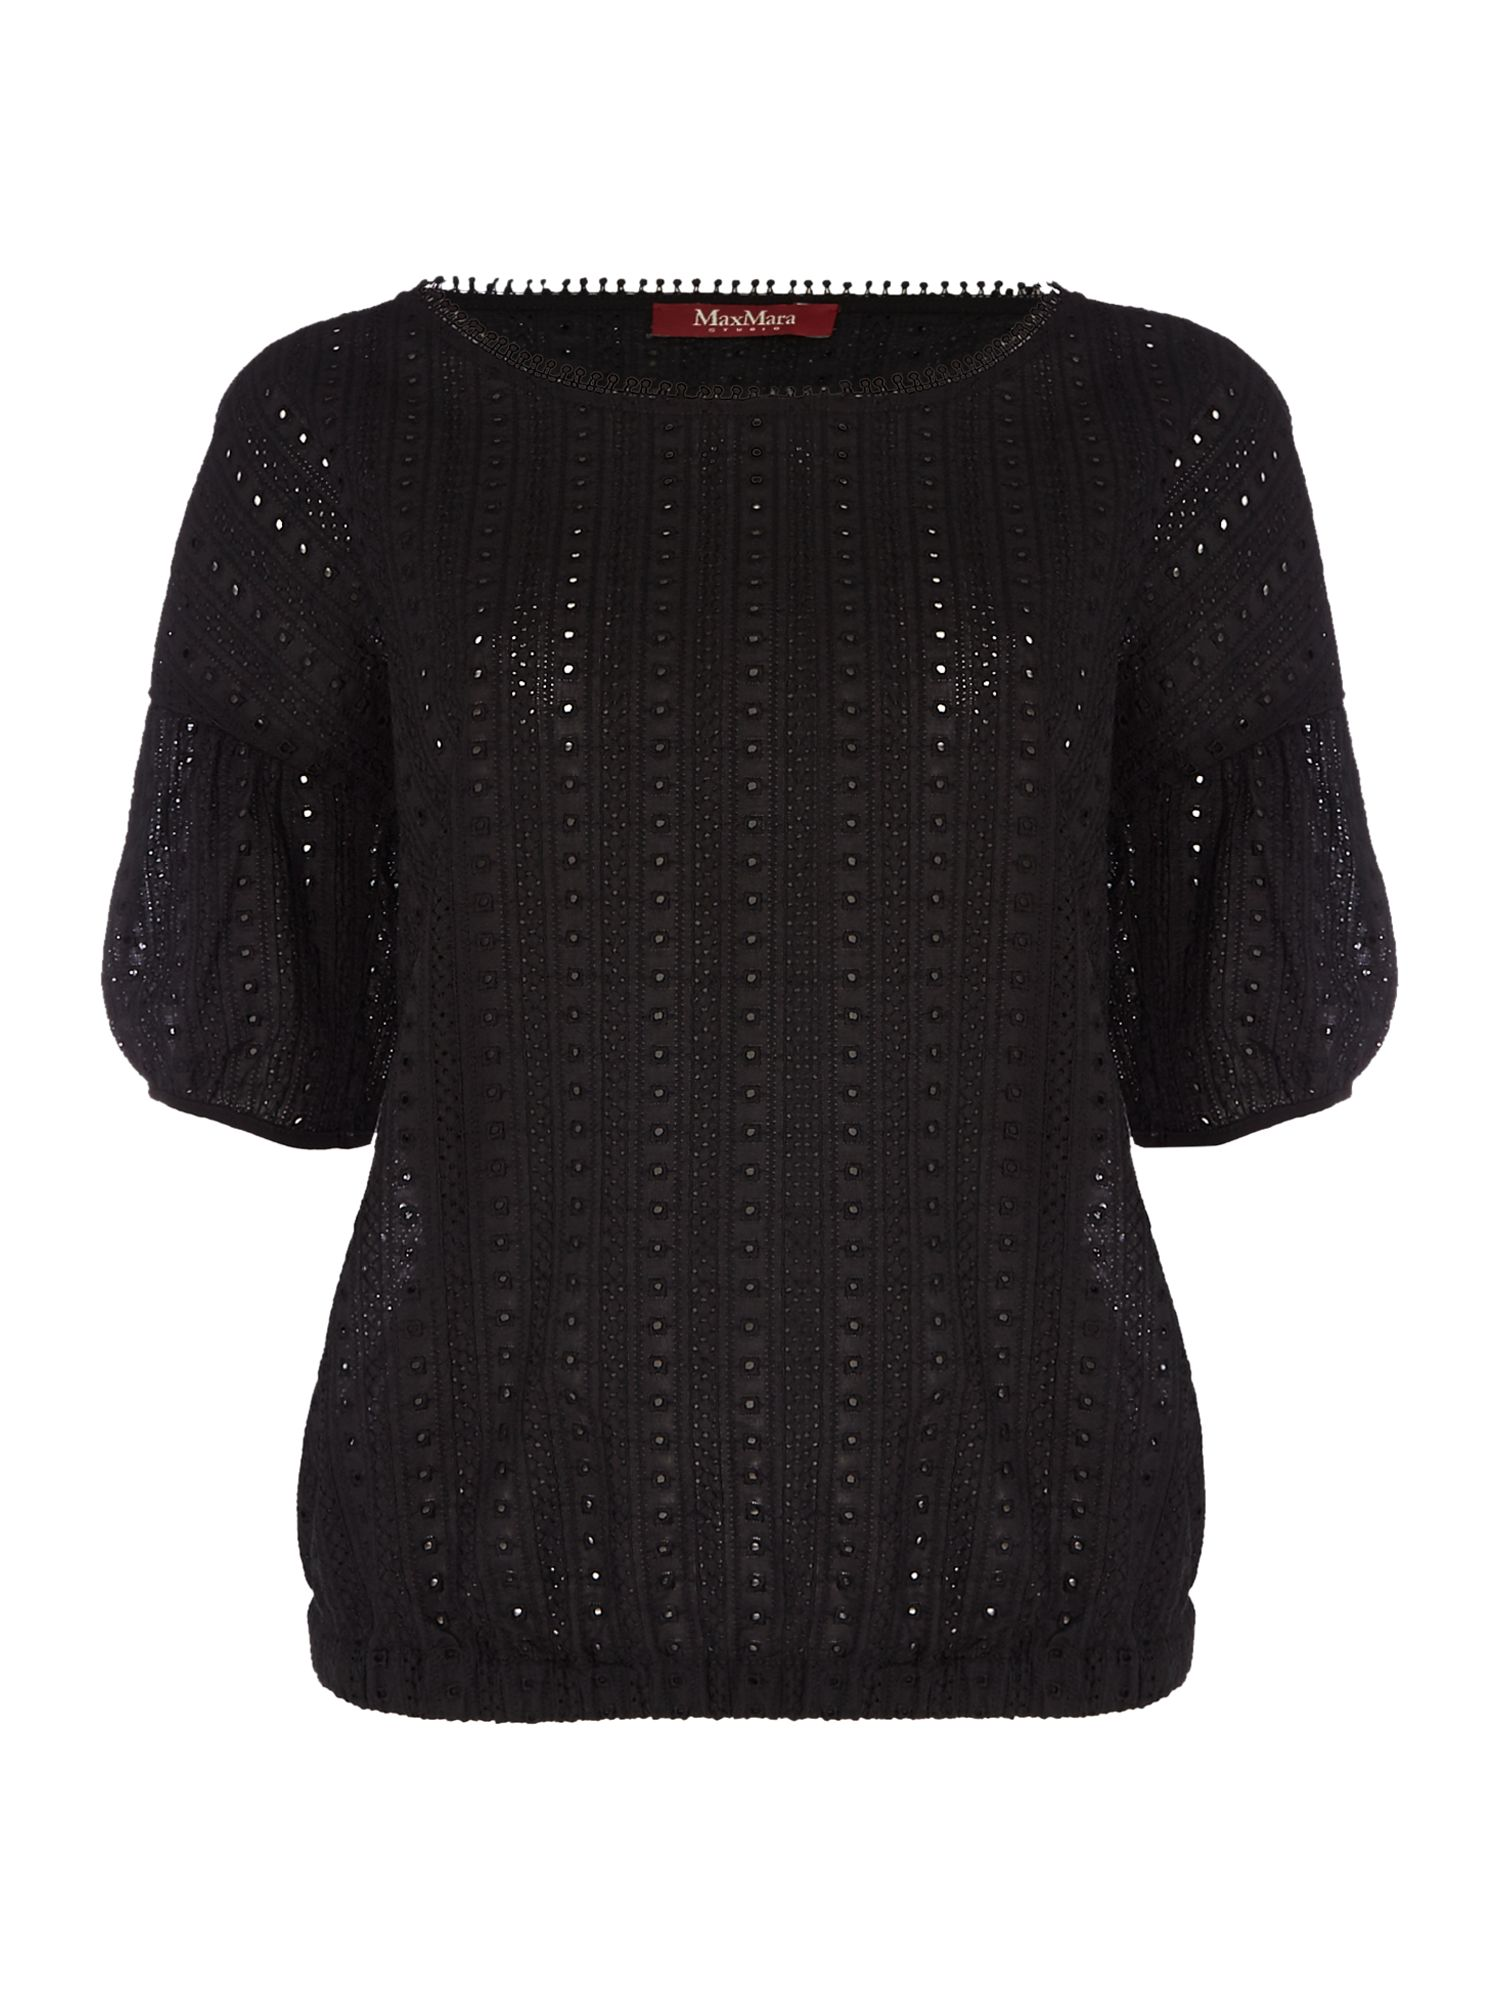 Max Mara Studio ANGRI bell sleeve brocade top, Black